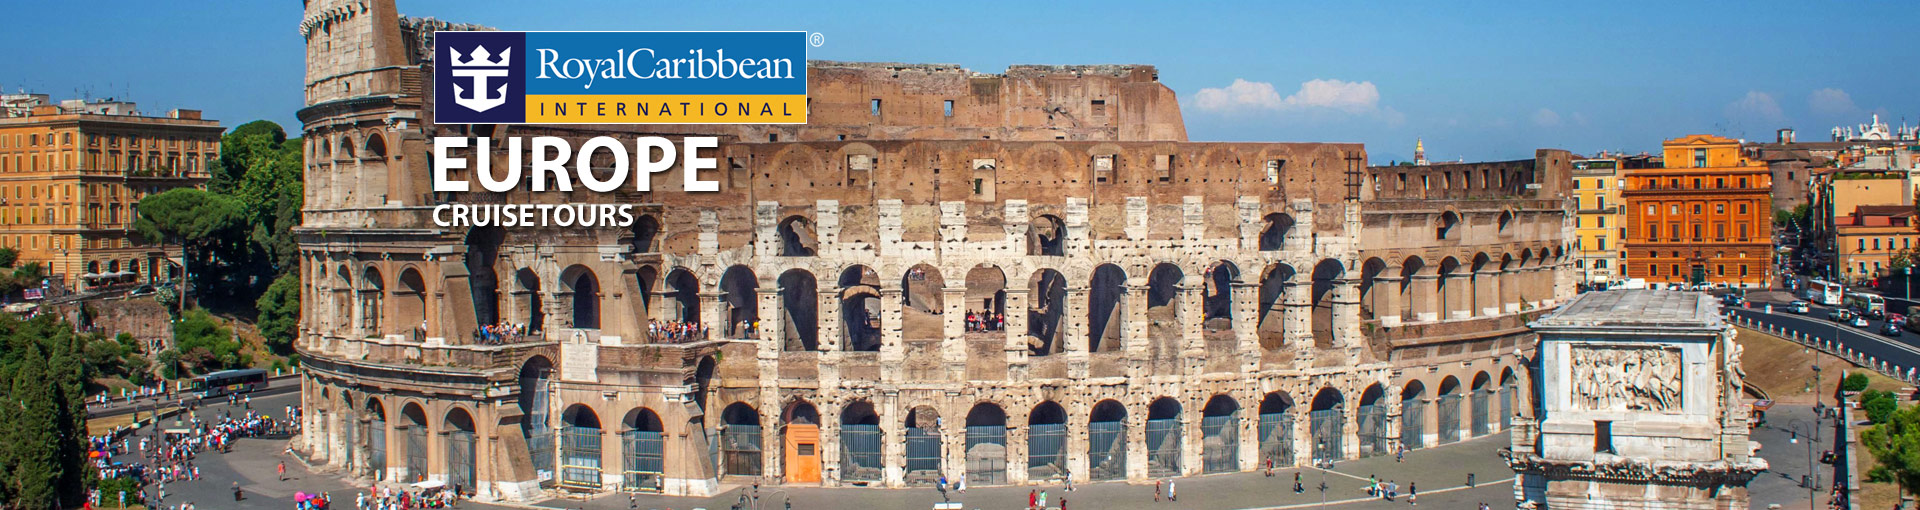 Royal Caribbean Europe Cruisetours